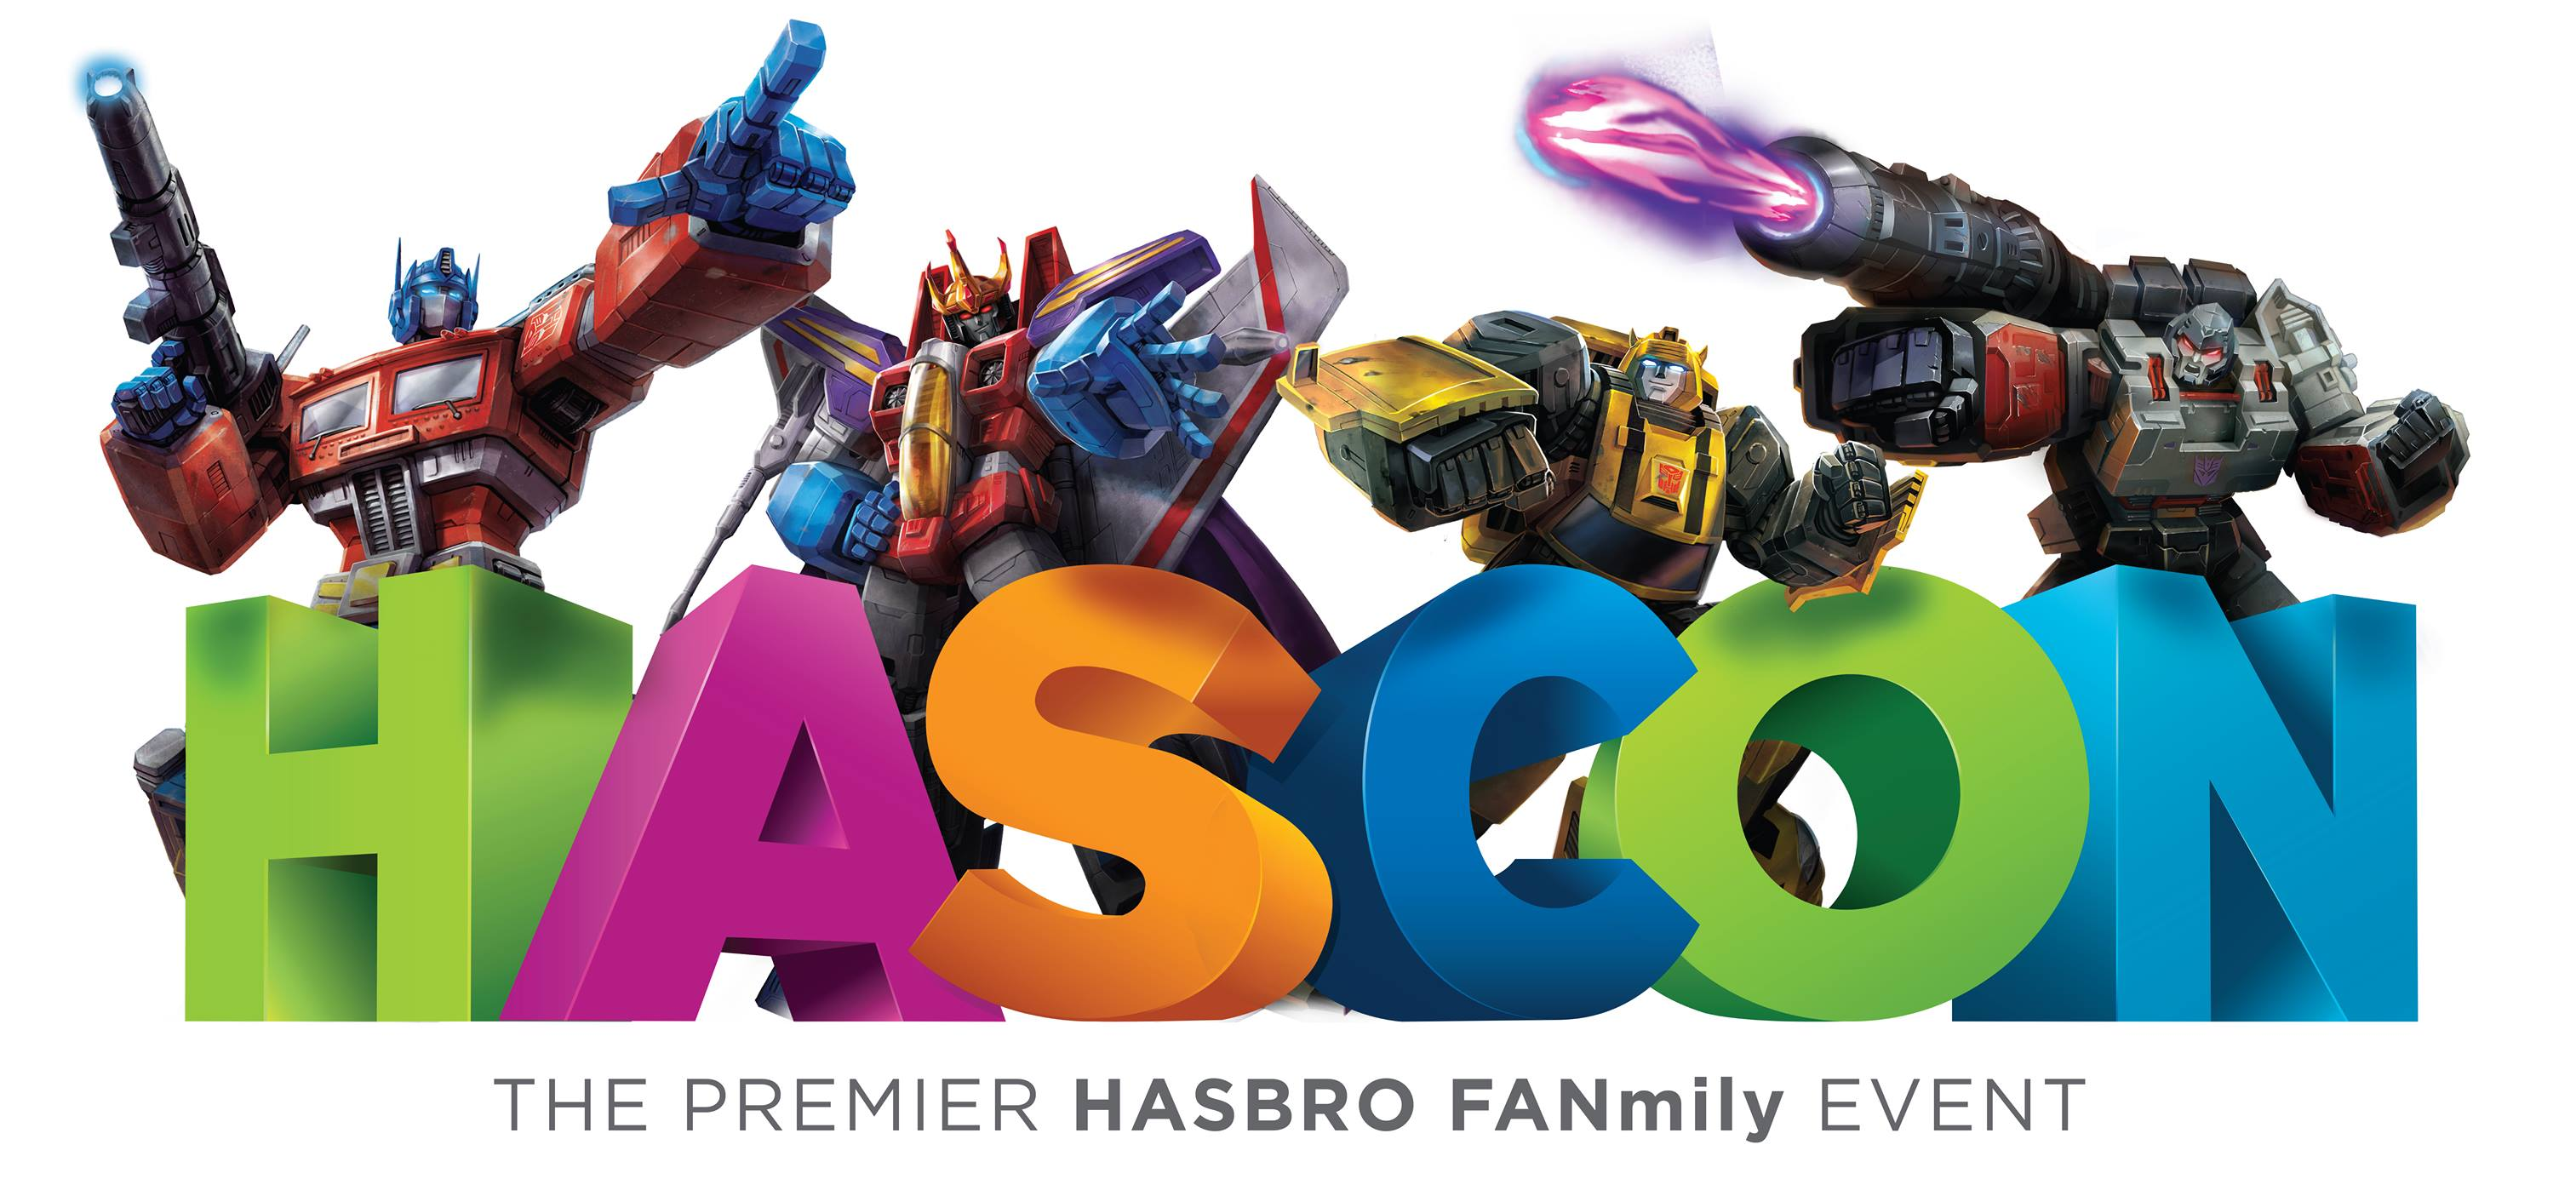 Hasbro: HASCON Brand Experiences Revealed!